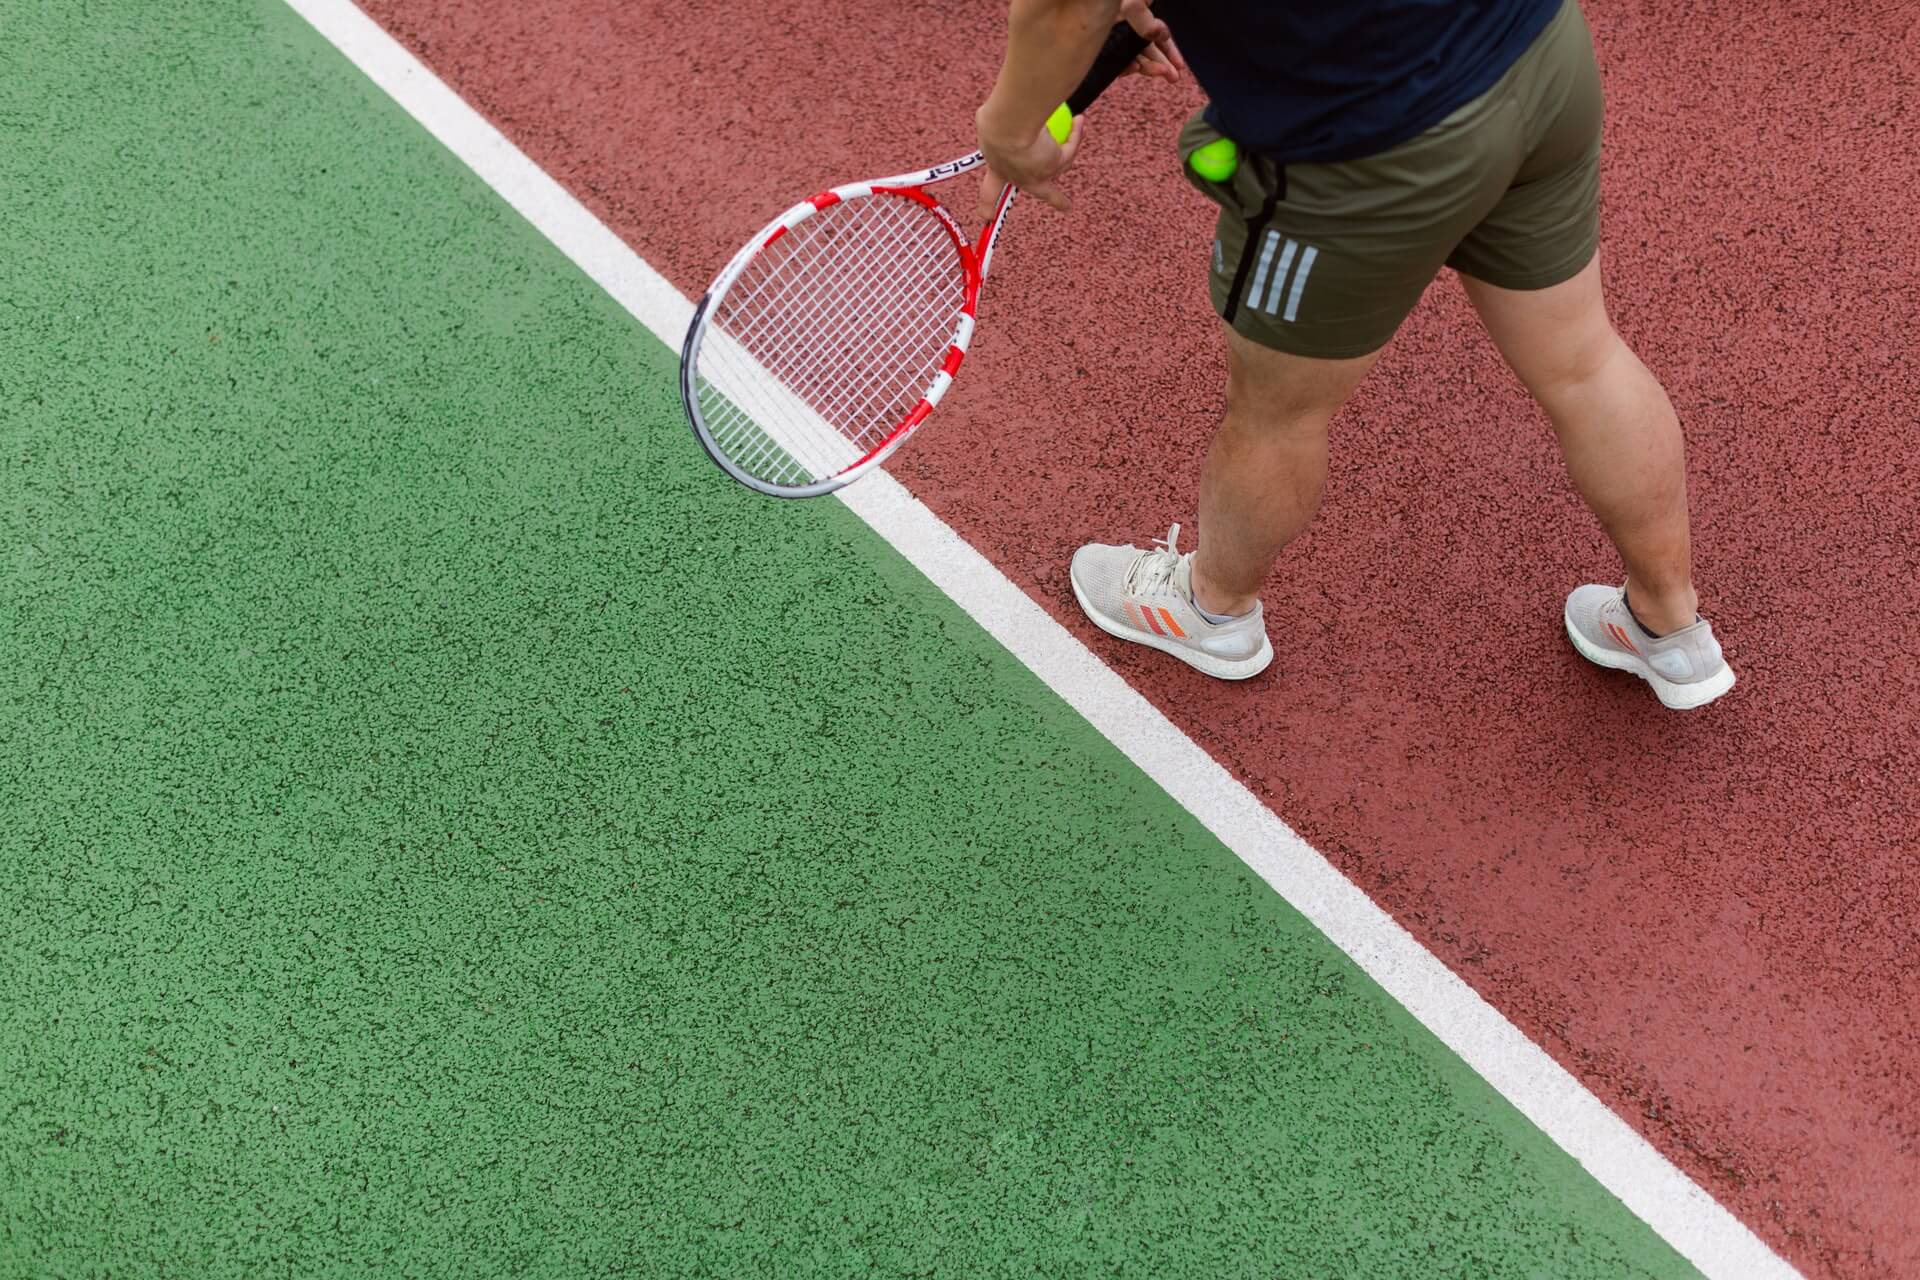 Closeup of person playing tennis